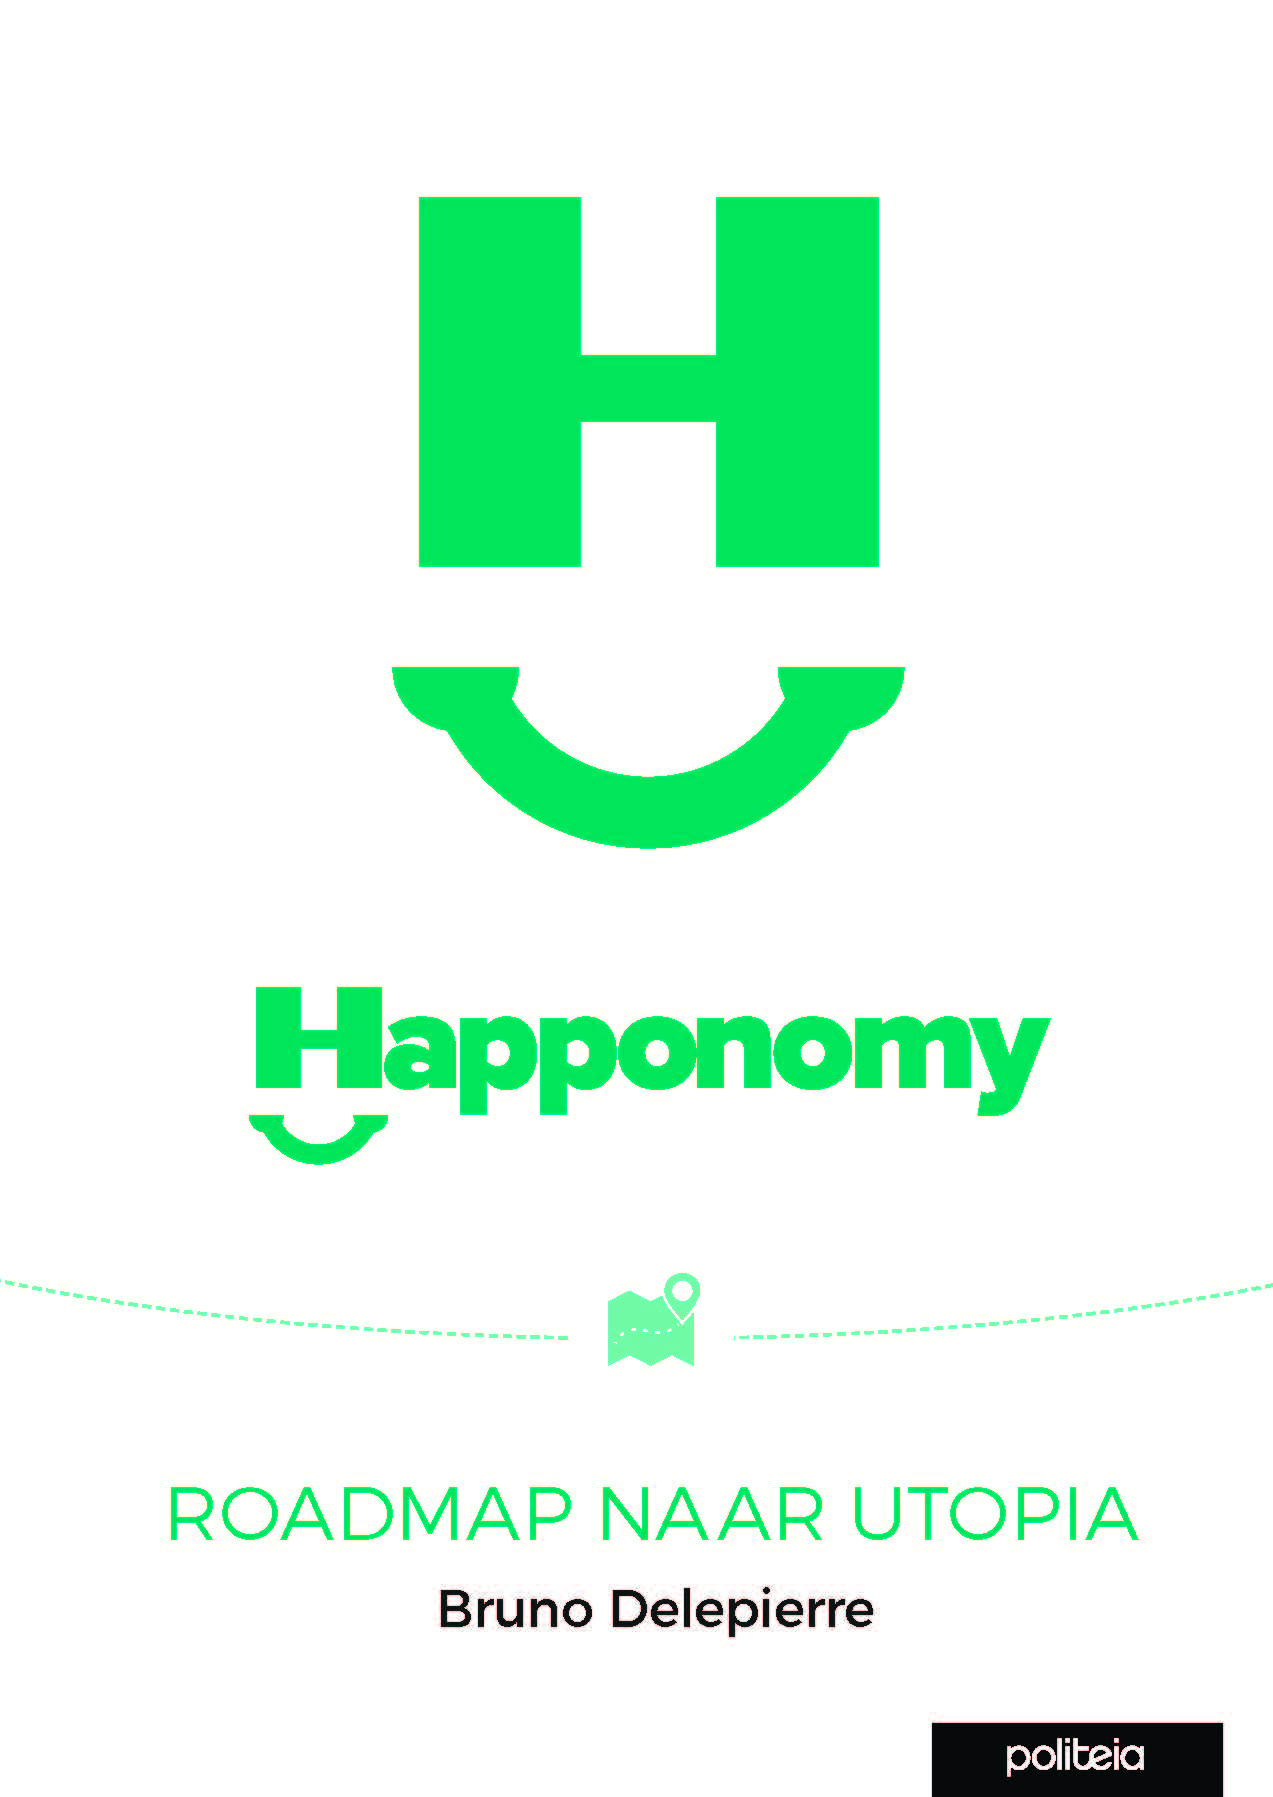 HAPPONOMY - ROADMAP NAAR UTOPIA